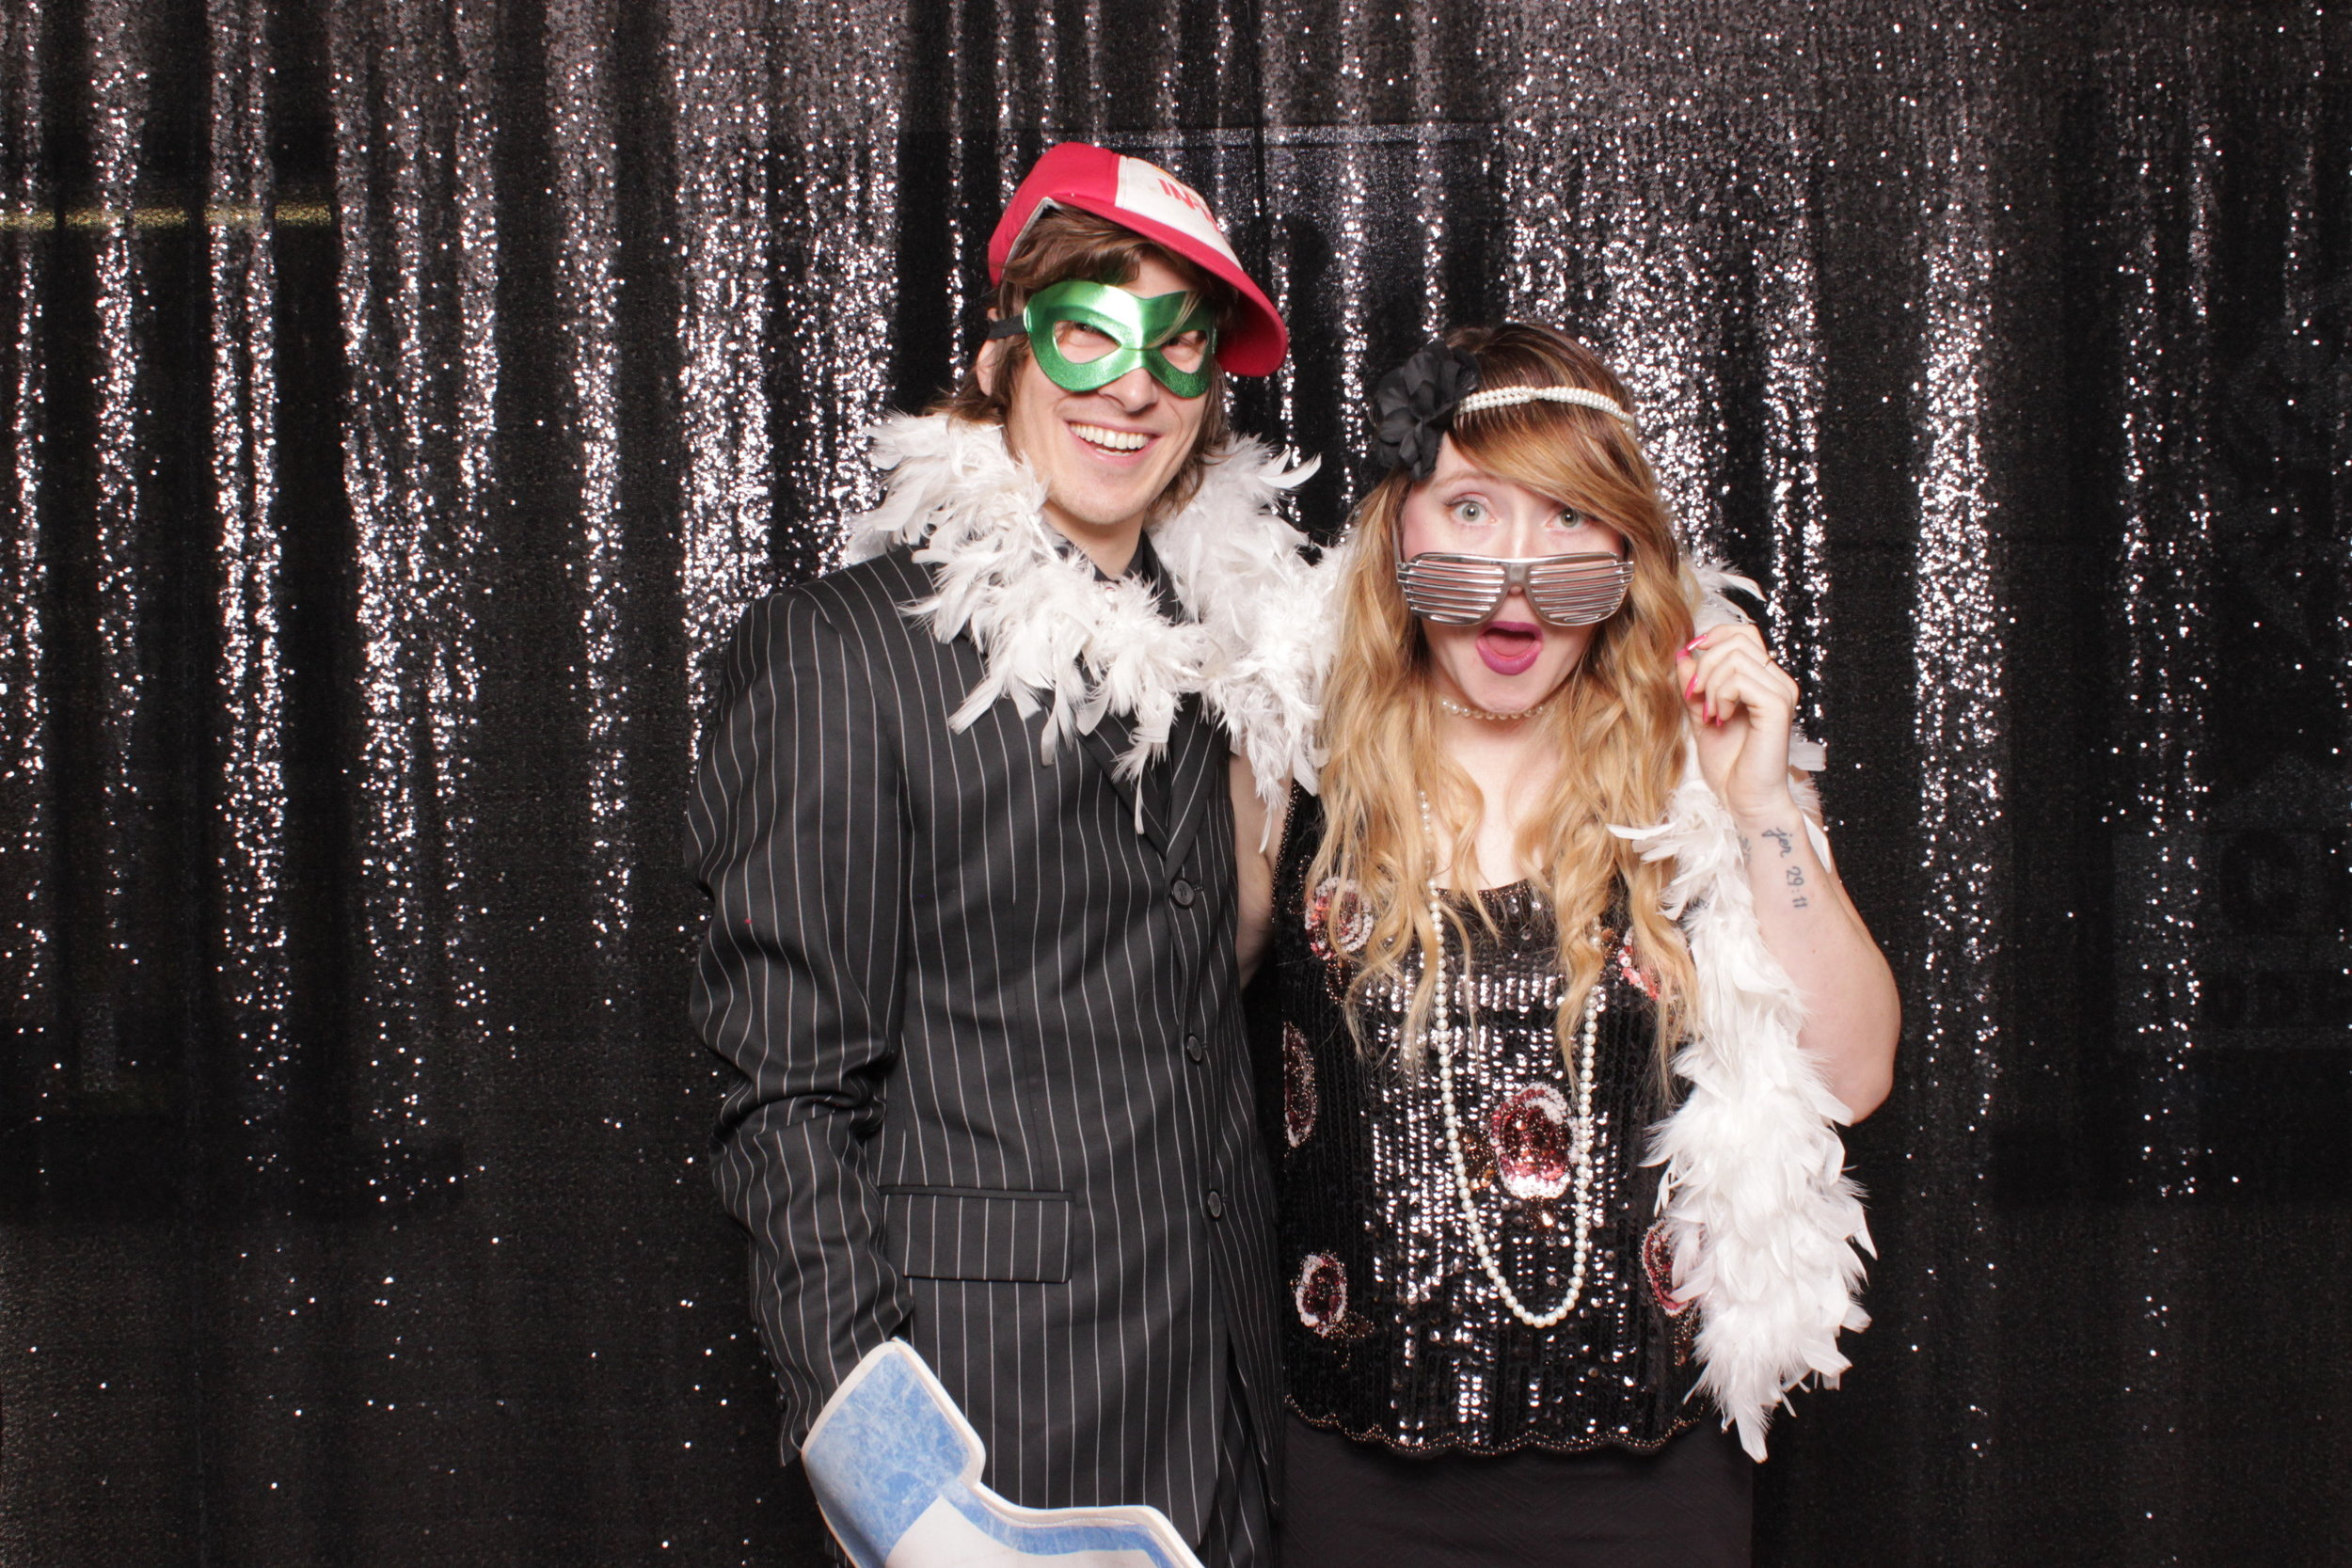 chico-trebooth-costsco-party-photo-booth-rental.jpg